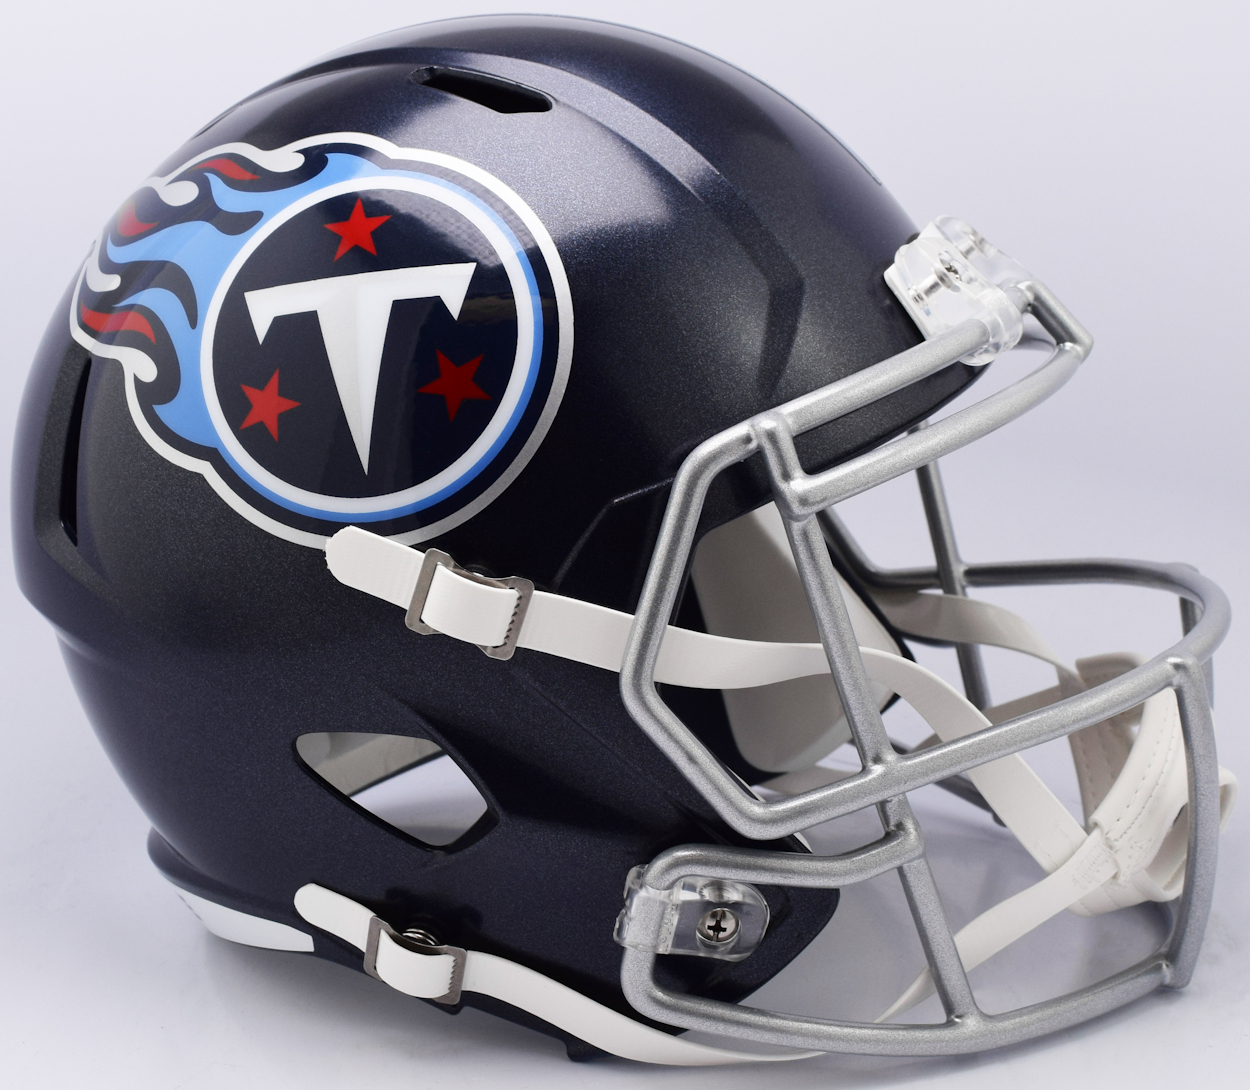 Tennessee Titans Speed Replica Football Helmet <B>NEW 2018 Satin Navy Metallic</B>